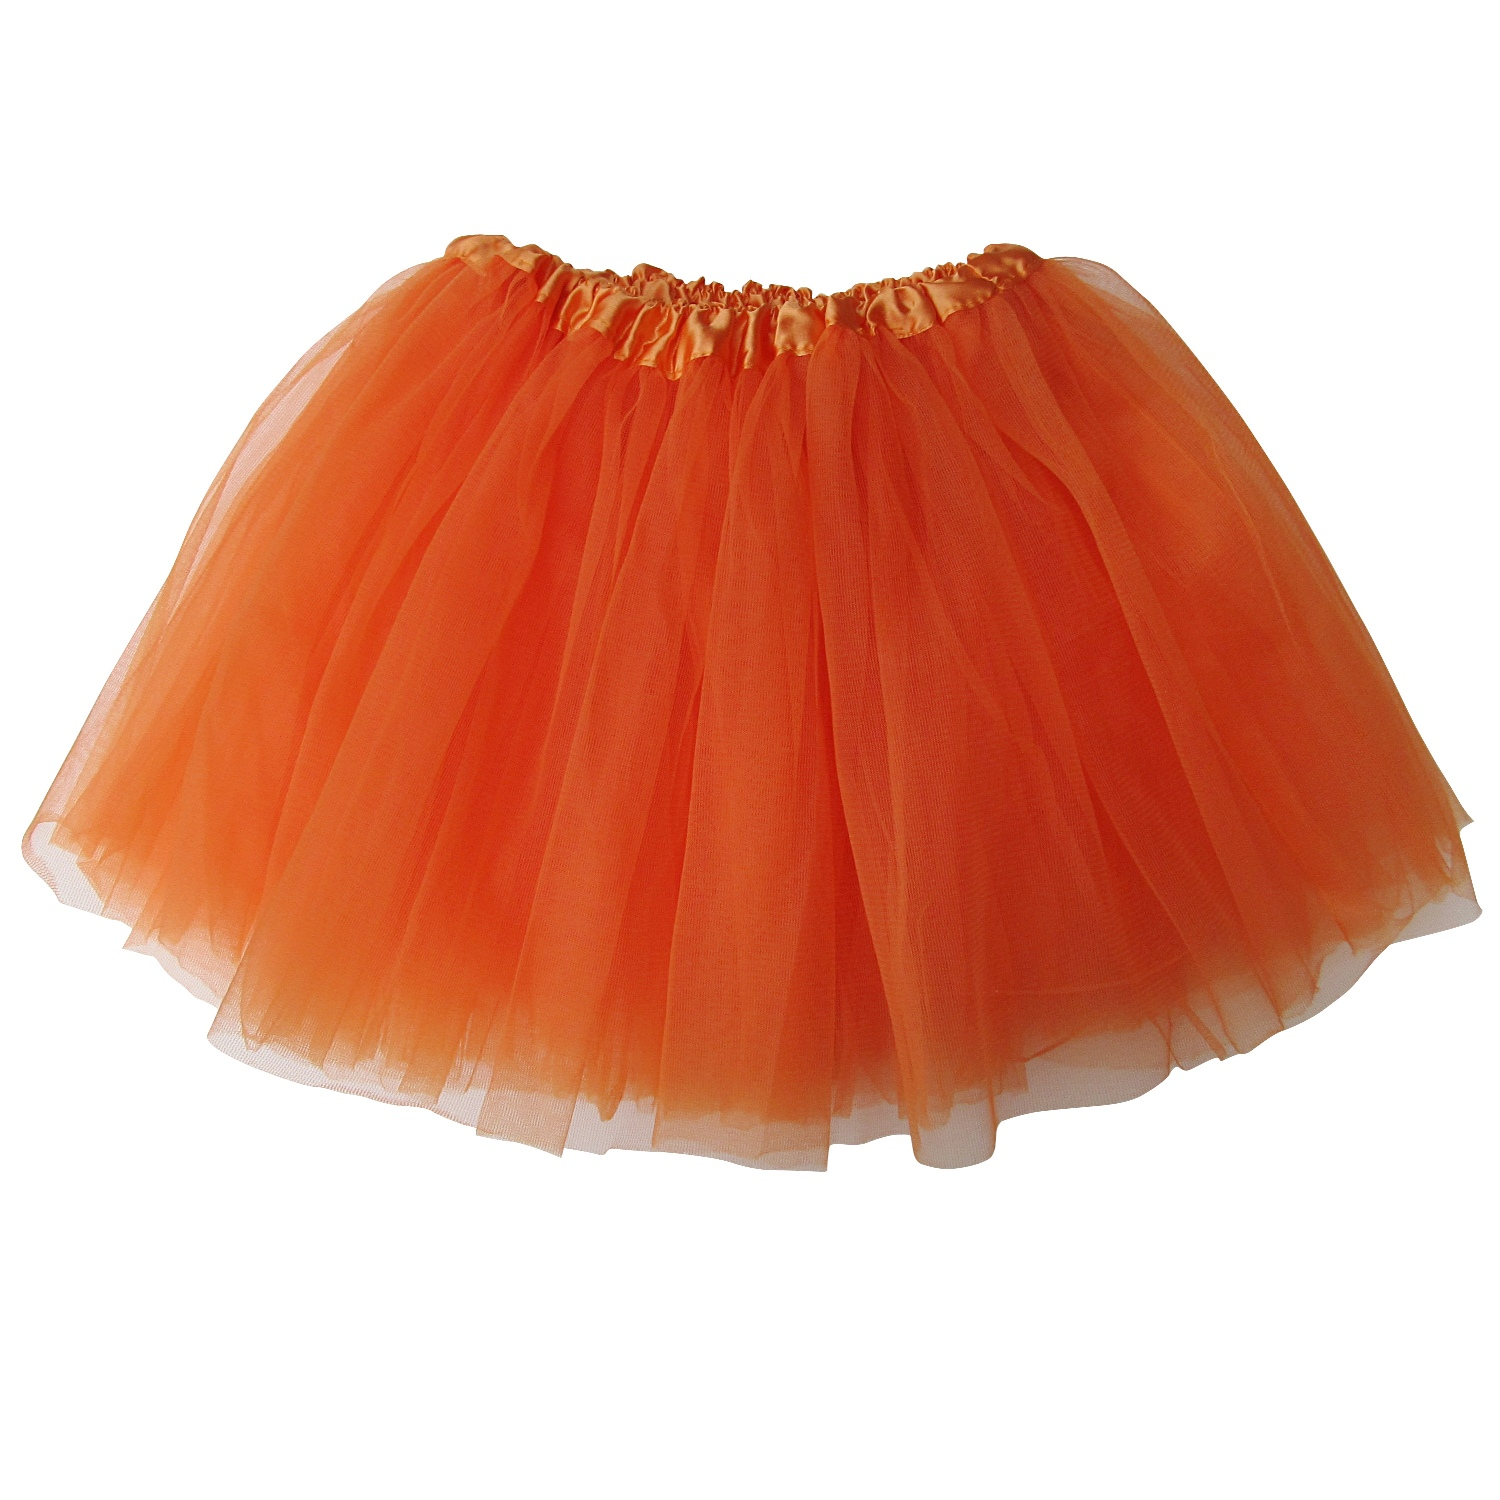 adult size layer tulle tutu skirt princess halloween costume ballet dress party outfit warrior dash